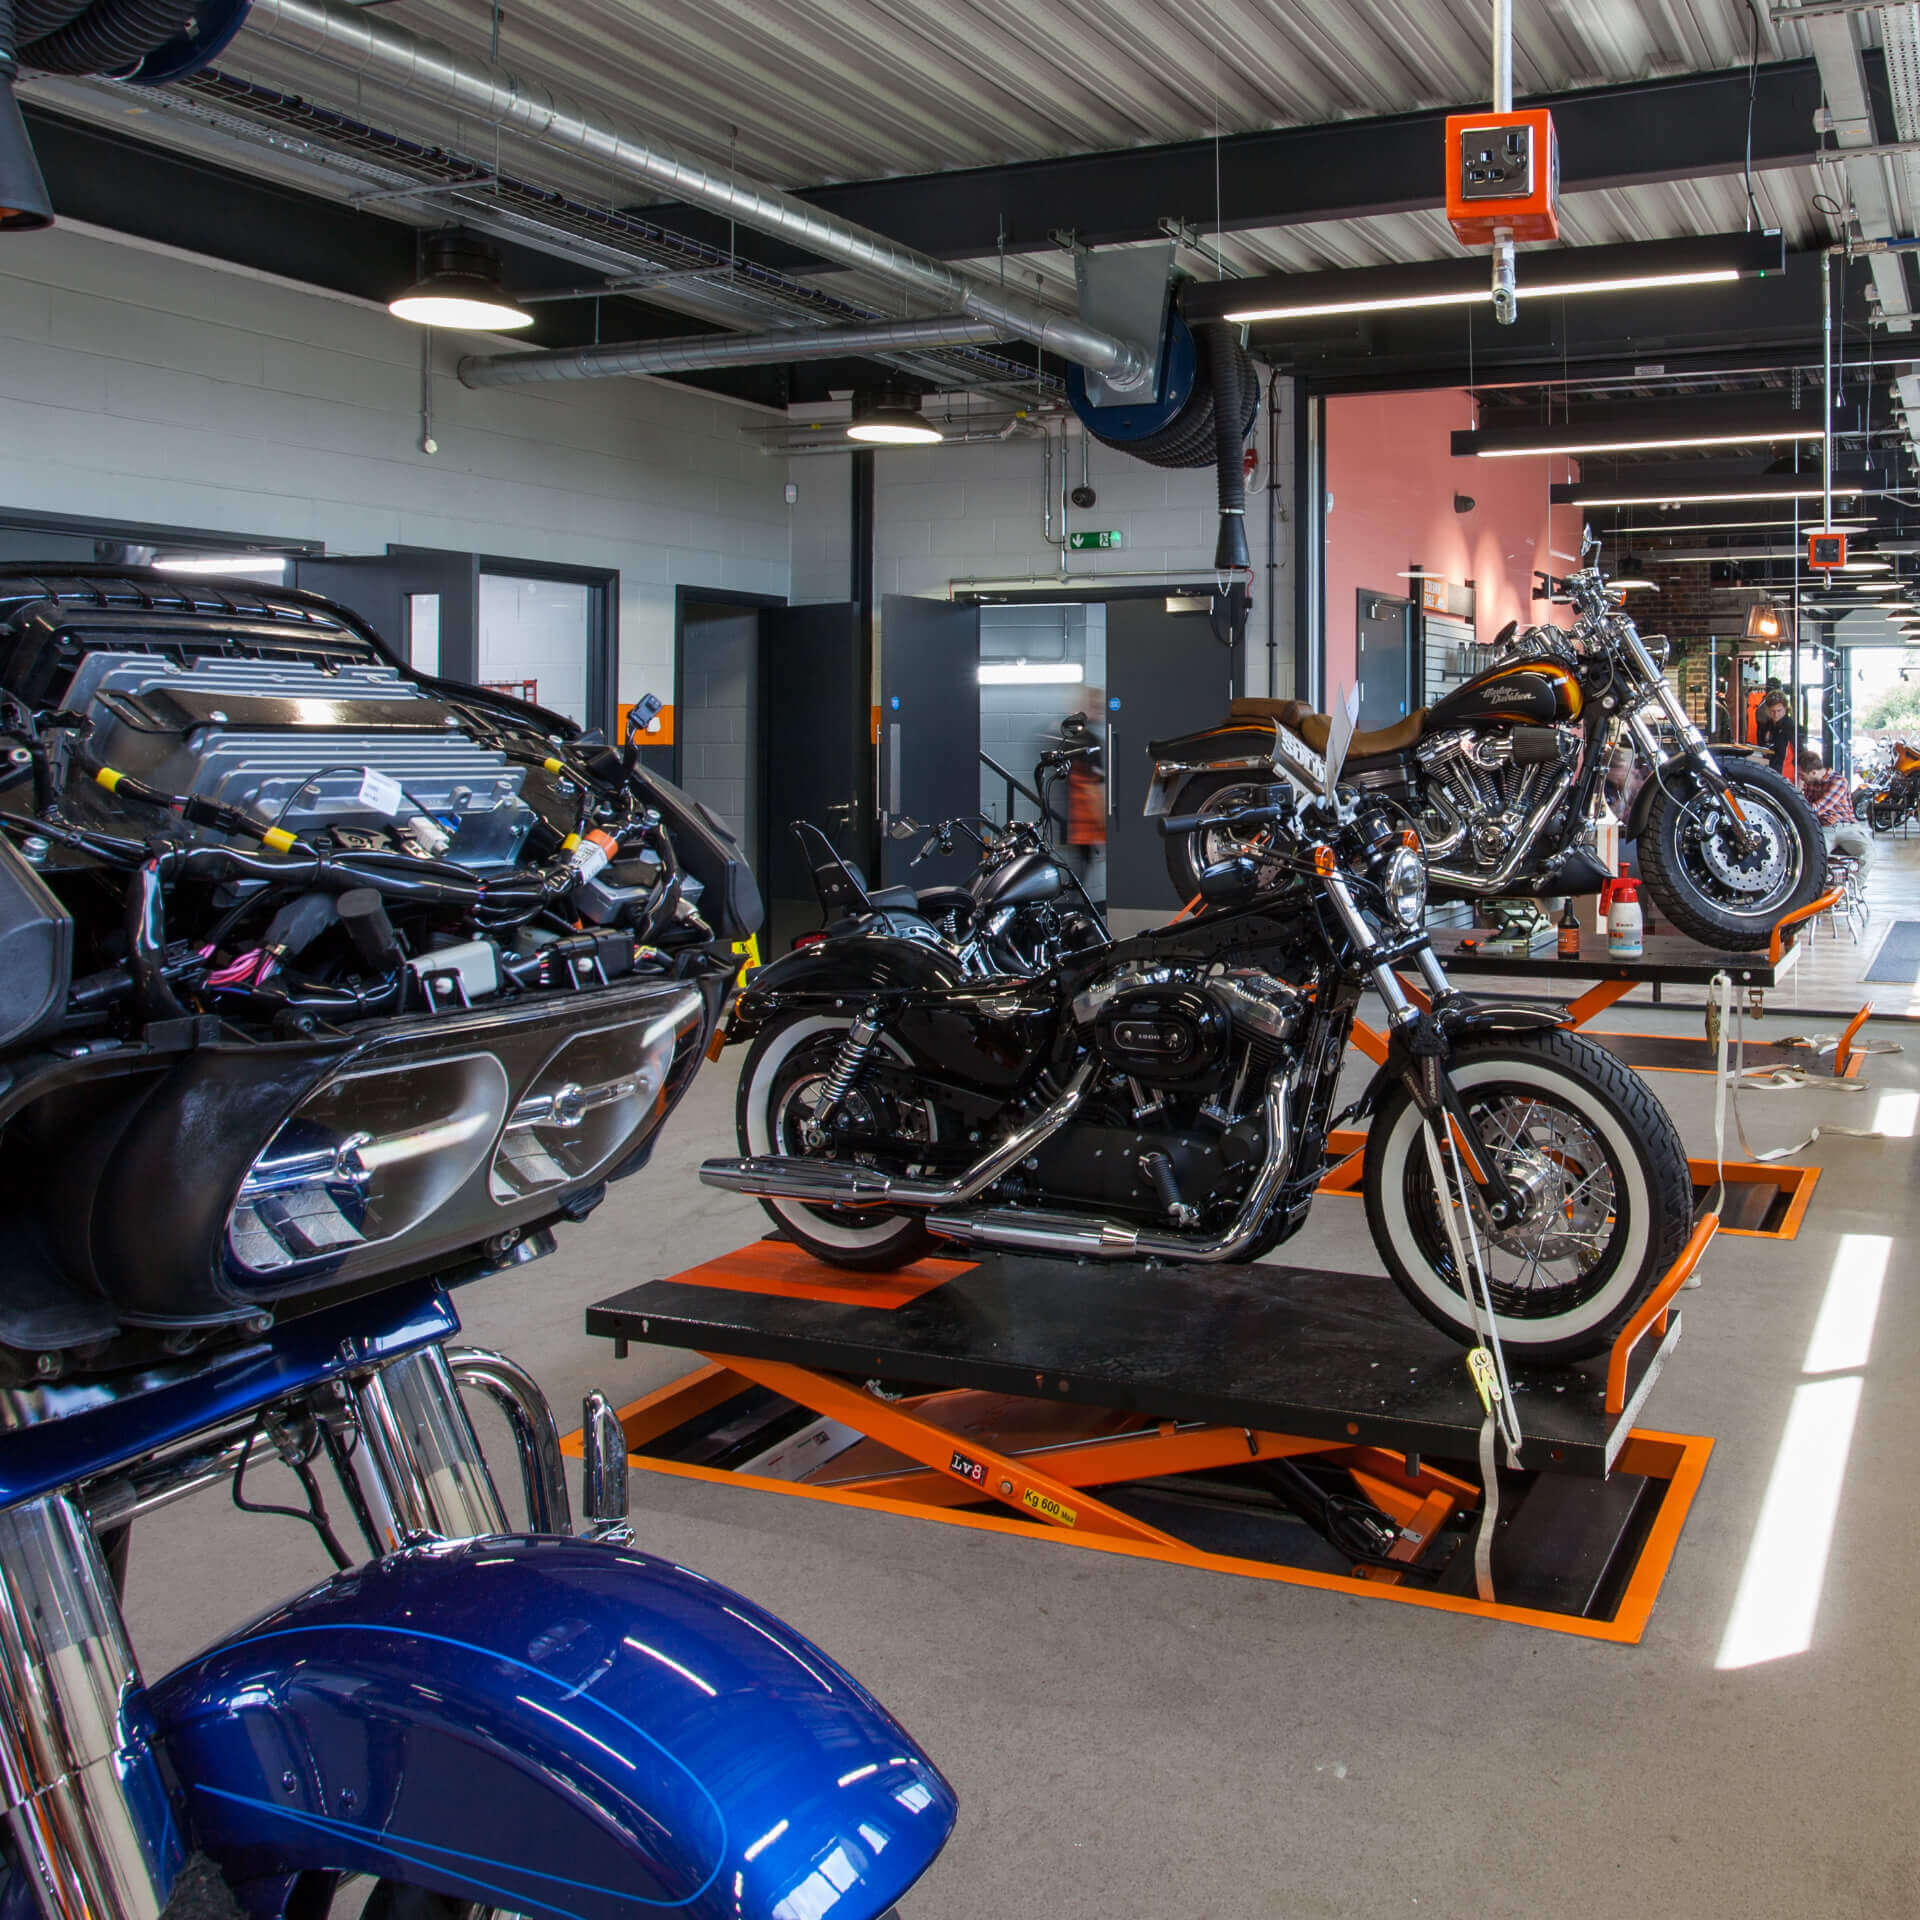 Bike Workshop at Harley Davidson